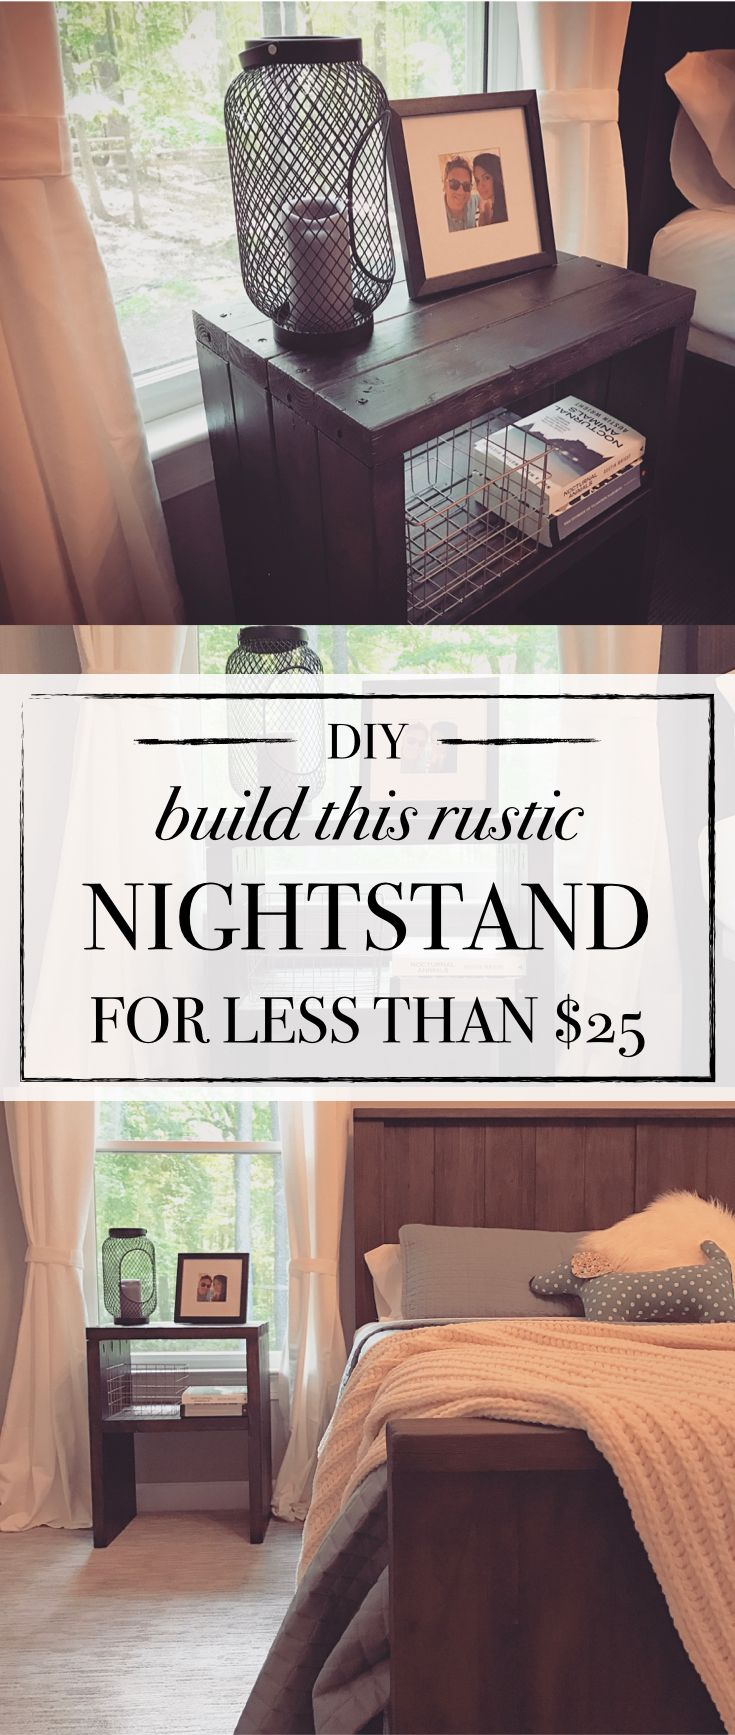 17 Best Images About Nightstand Plans On Pinterest: Best 20+ Diy Nightstand Ideas On Pinterest